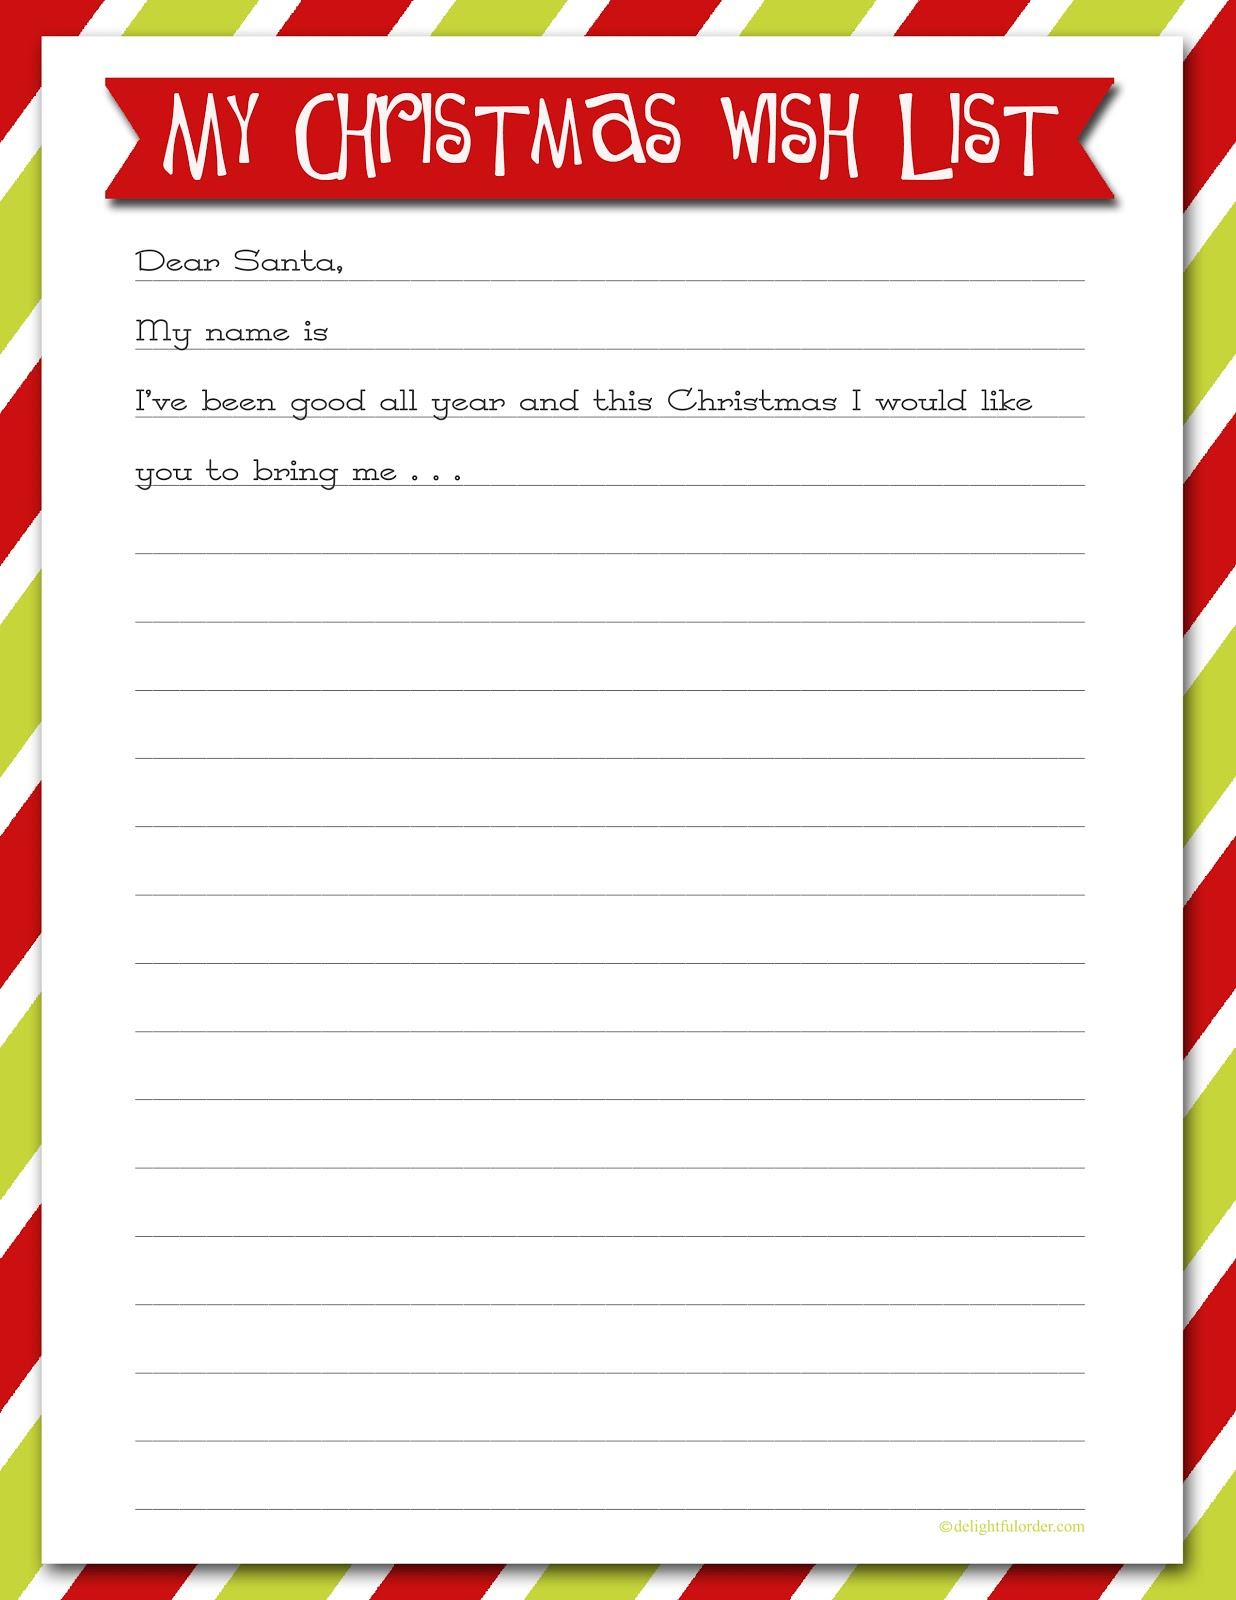 printable christmas list template – Printable Christmas List Template